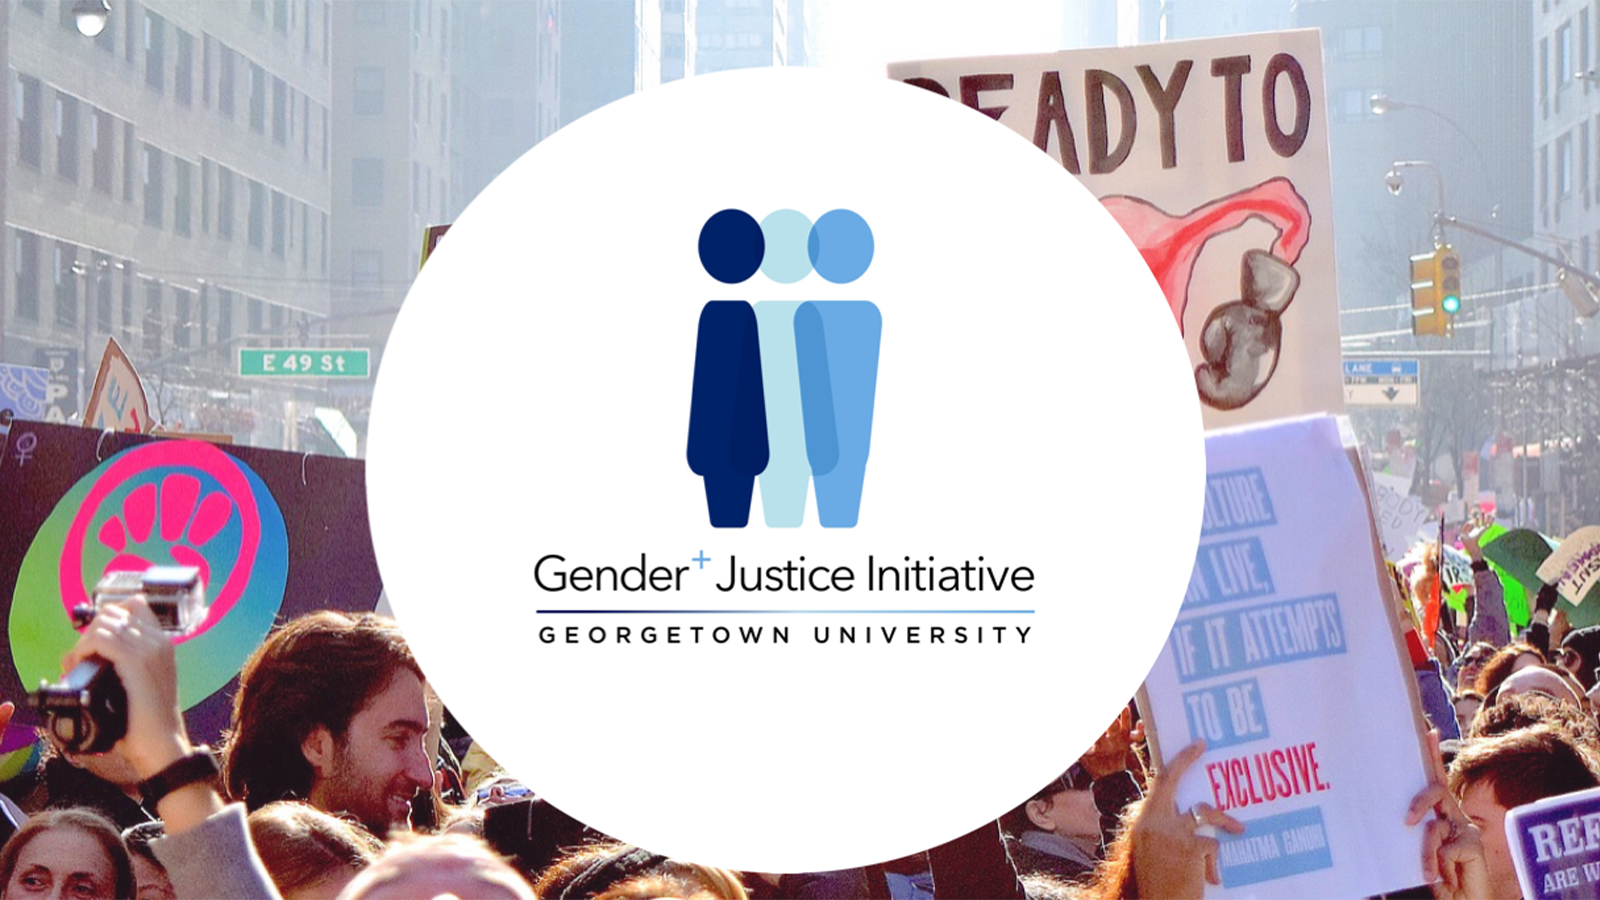 Gender+Justice Initiative logo with protests in background